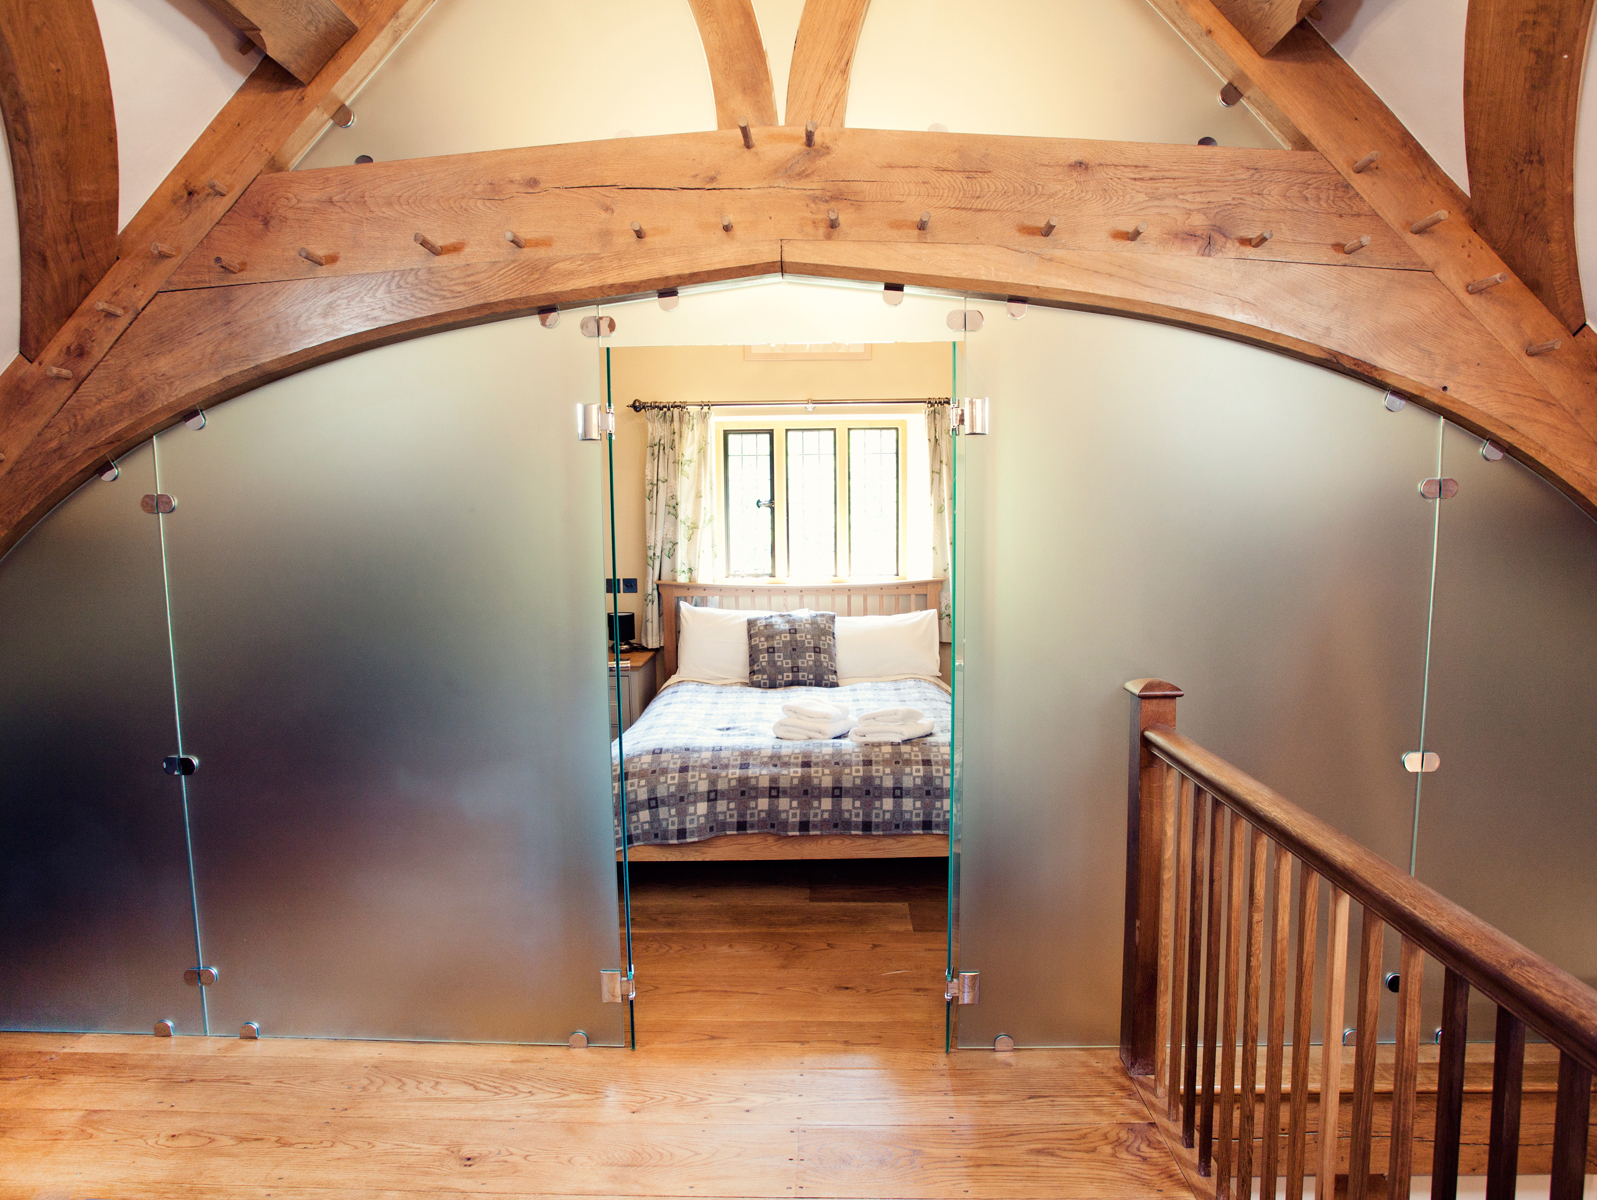 5 Bedroom Cottage in Hereford, Mid Wales